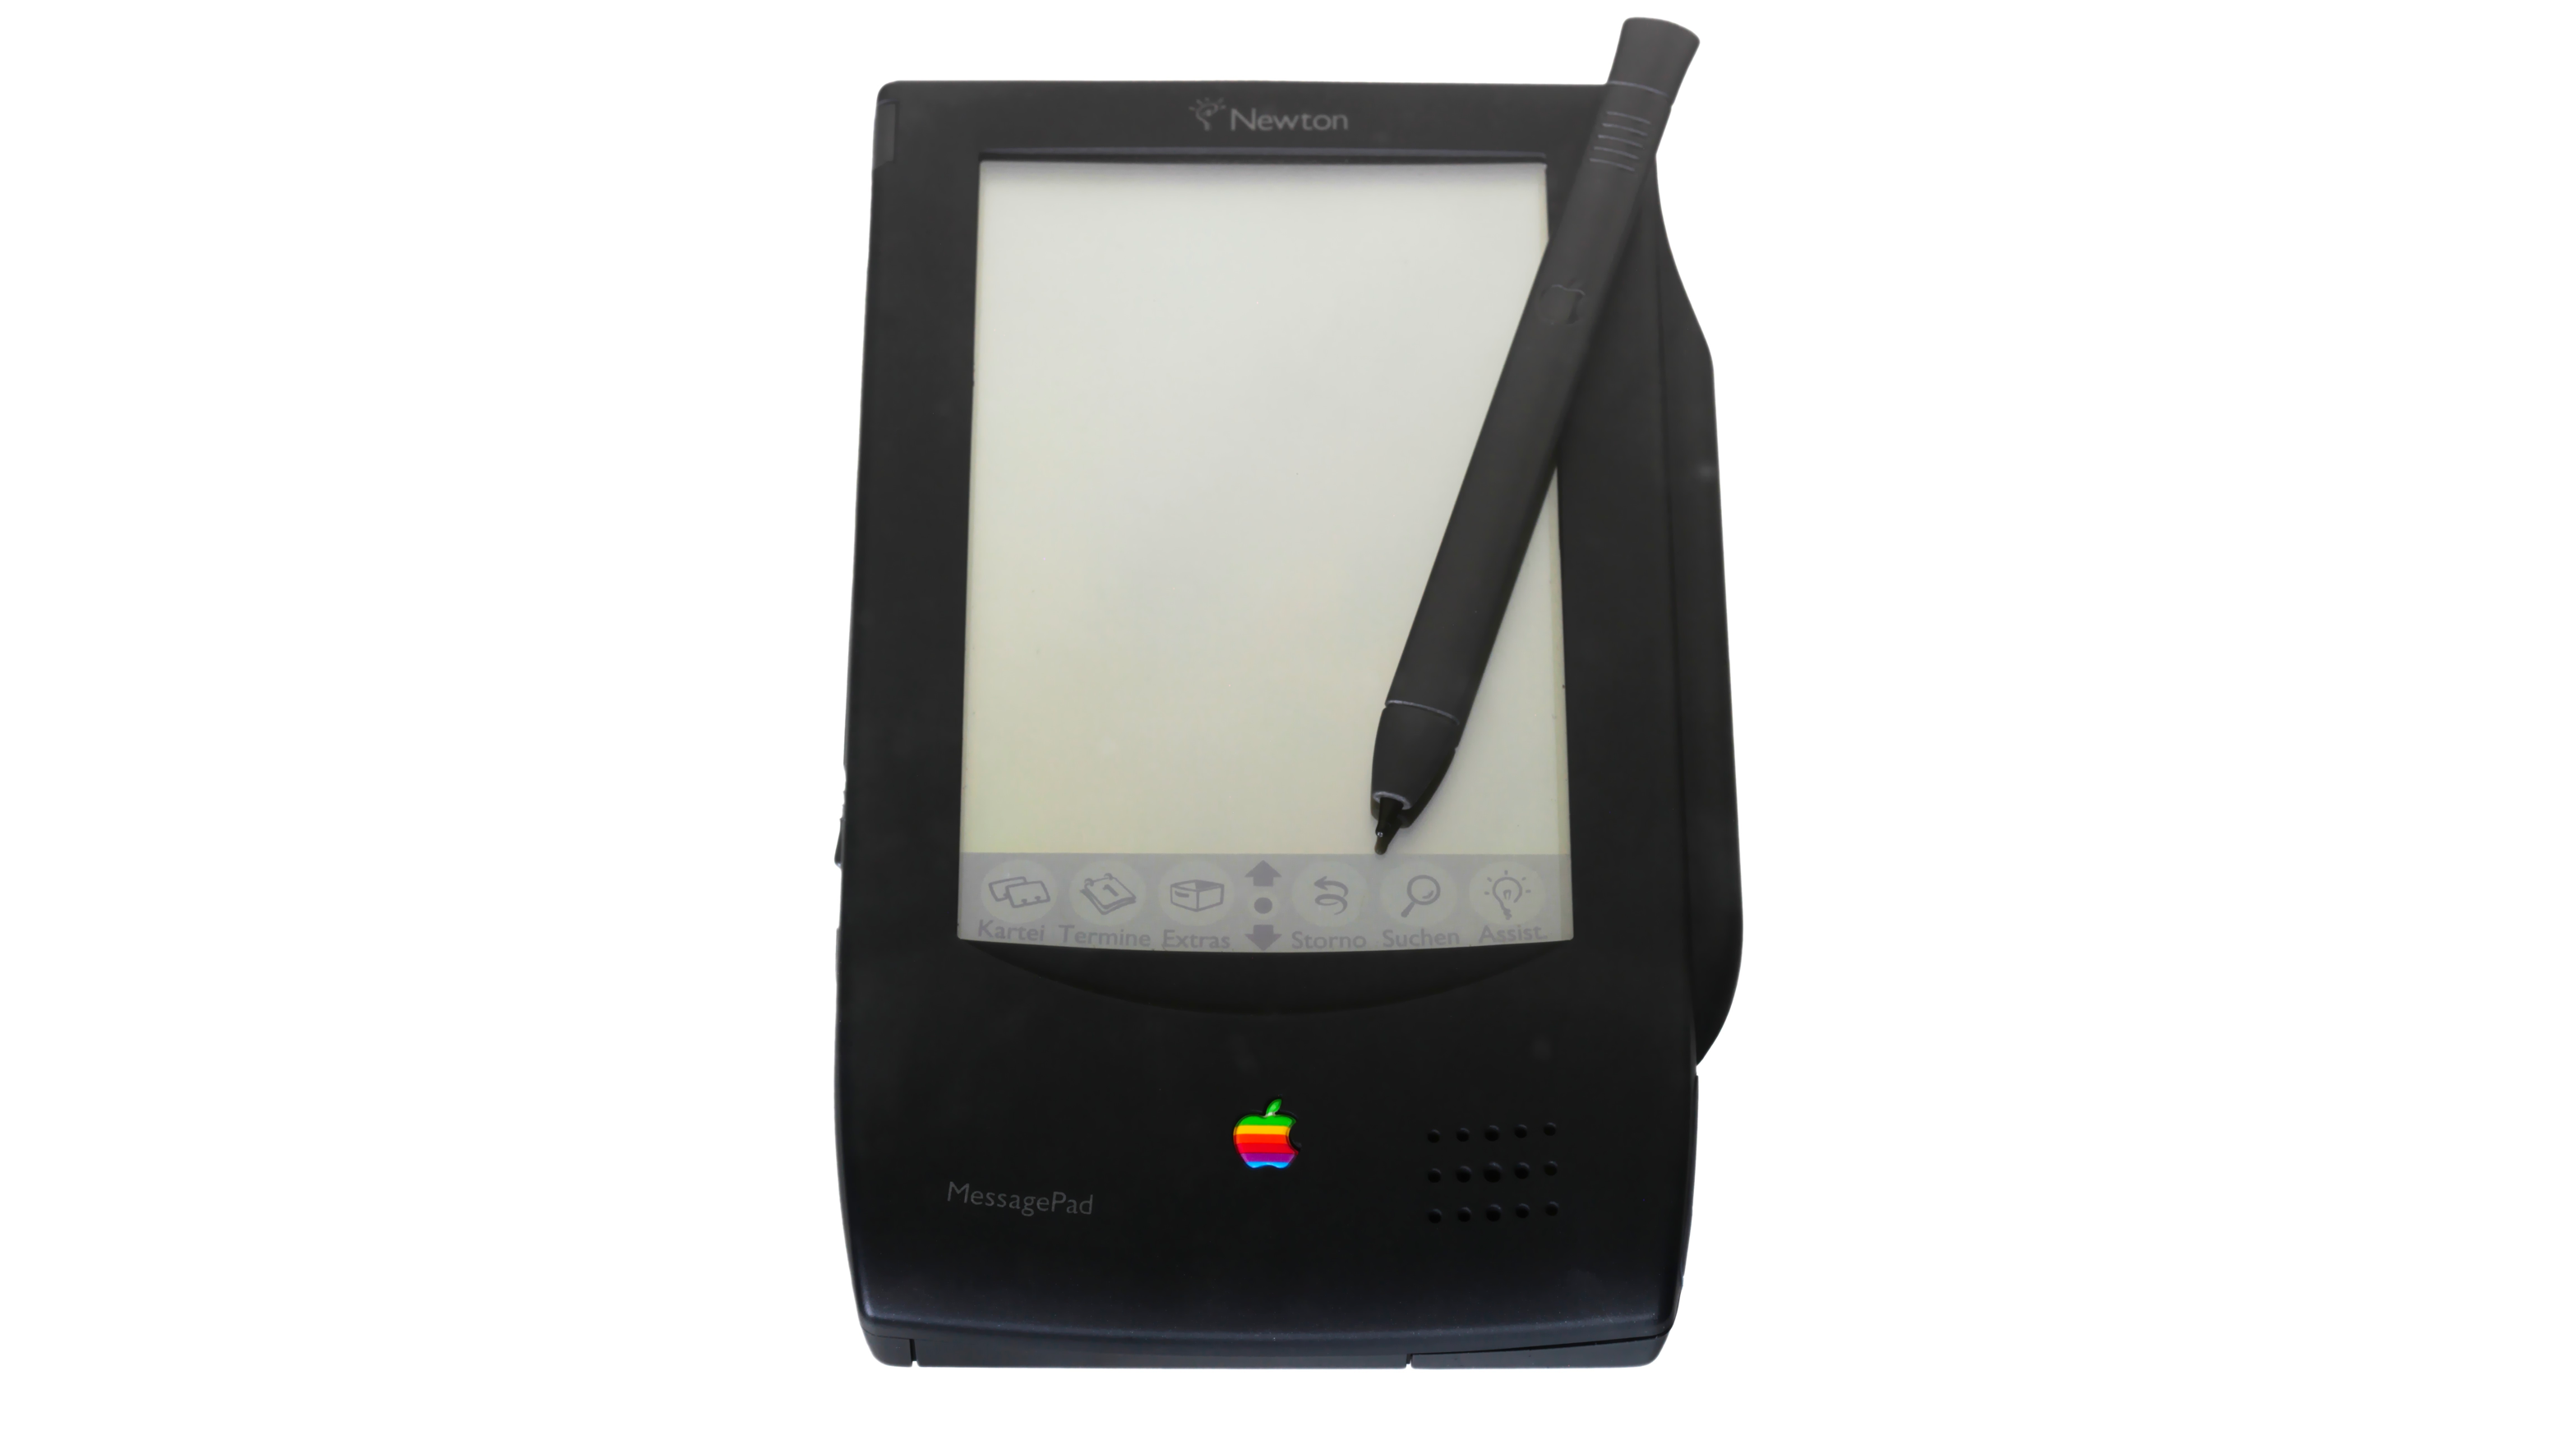 The Apple Newton was announced in 1993. Photo by Rama/Wikimedia Commons/CC BY-SA 2.0 FR